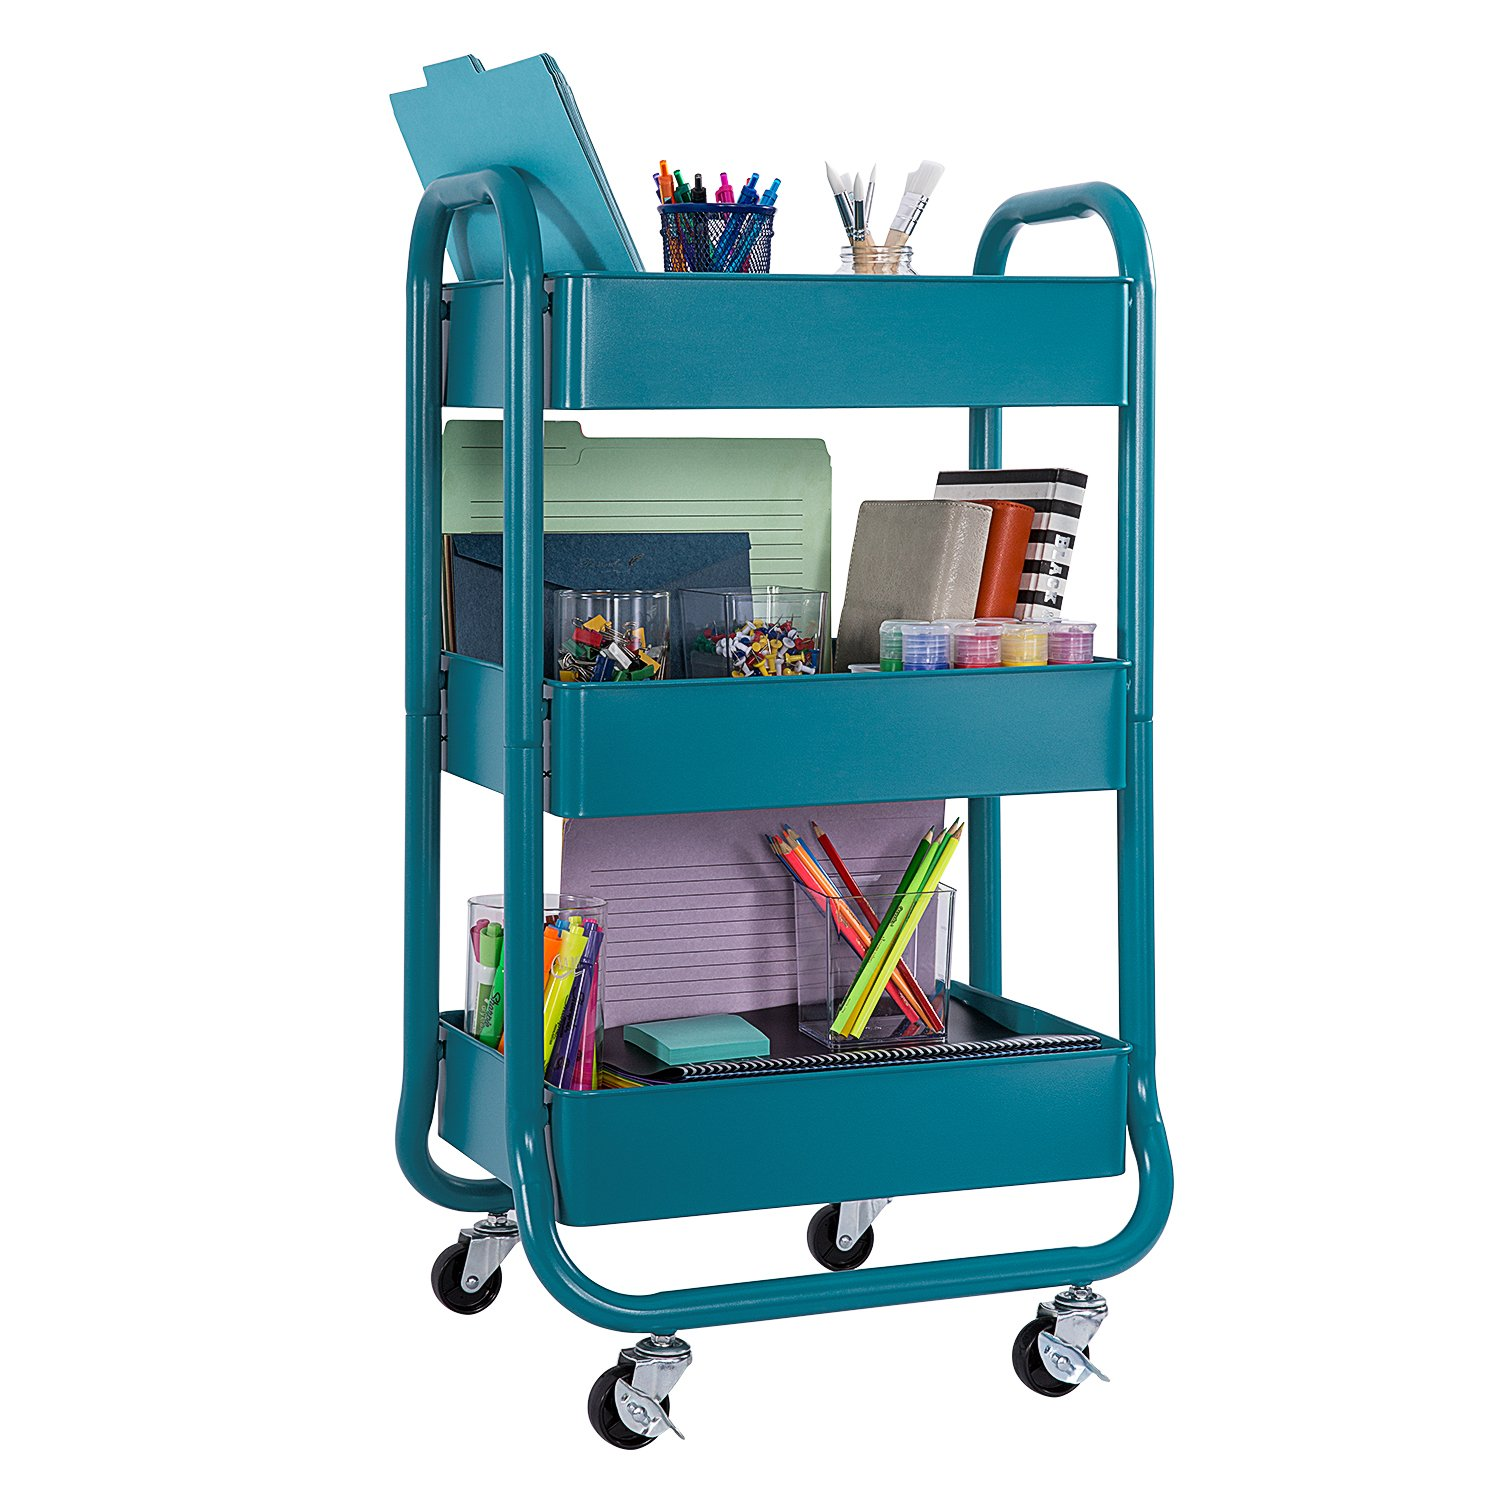 DESIGNA Metal Rolling Storage Cart 3 Tiers Utility Mobile Organization Cart with Handles Suitable for Office Home Kitchen or Outdoor, Turquoise